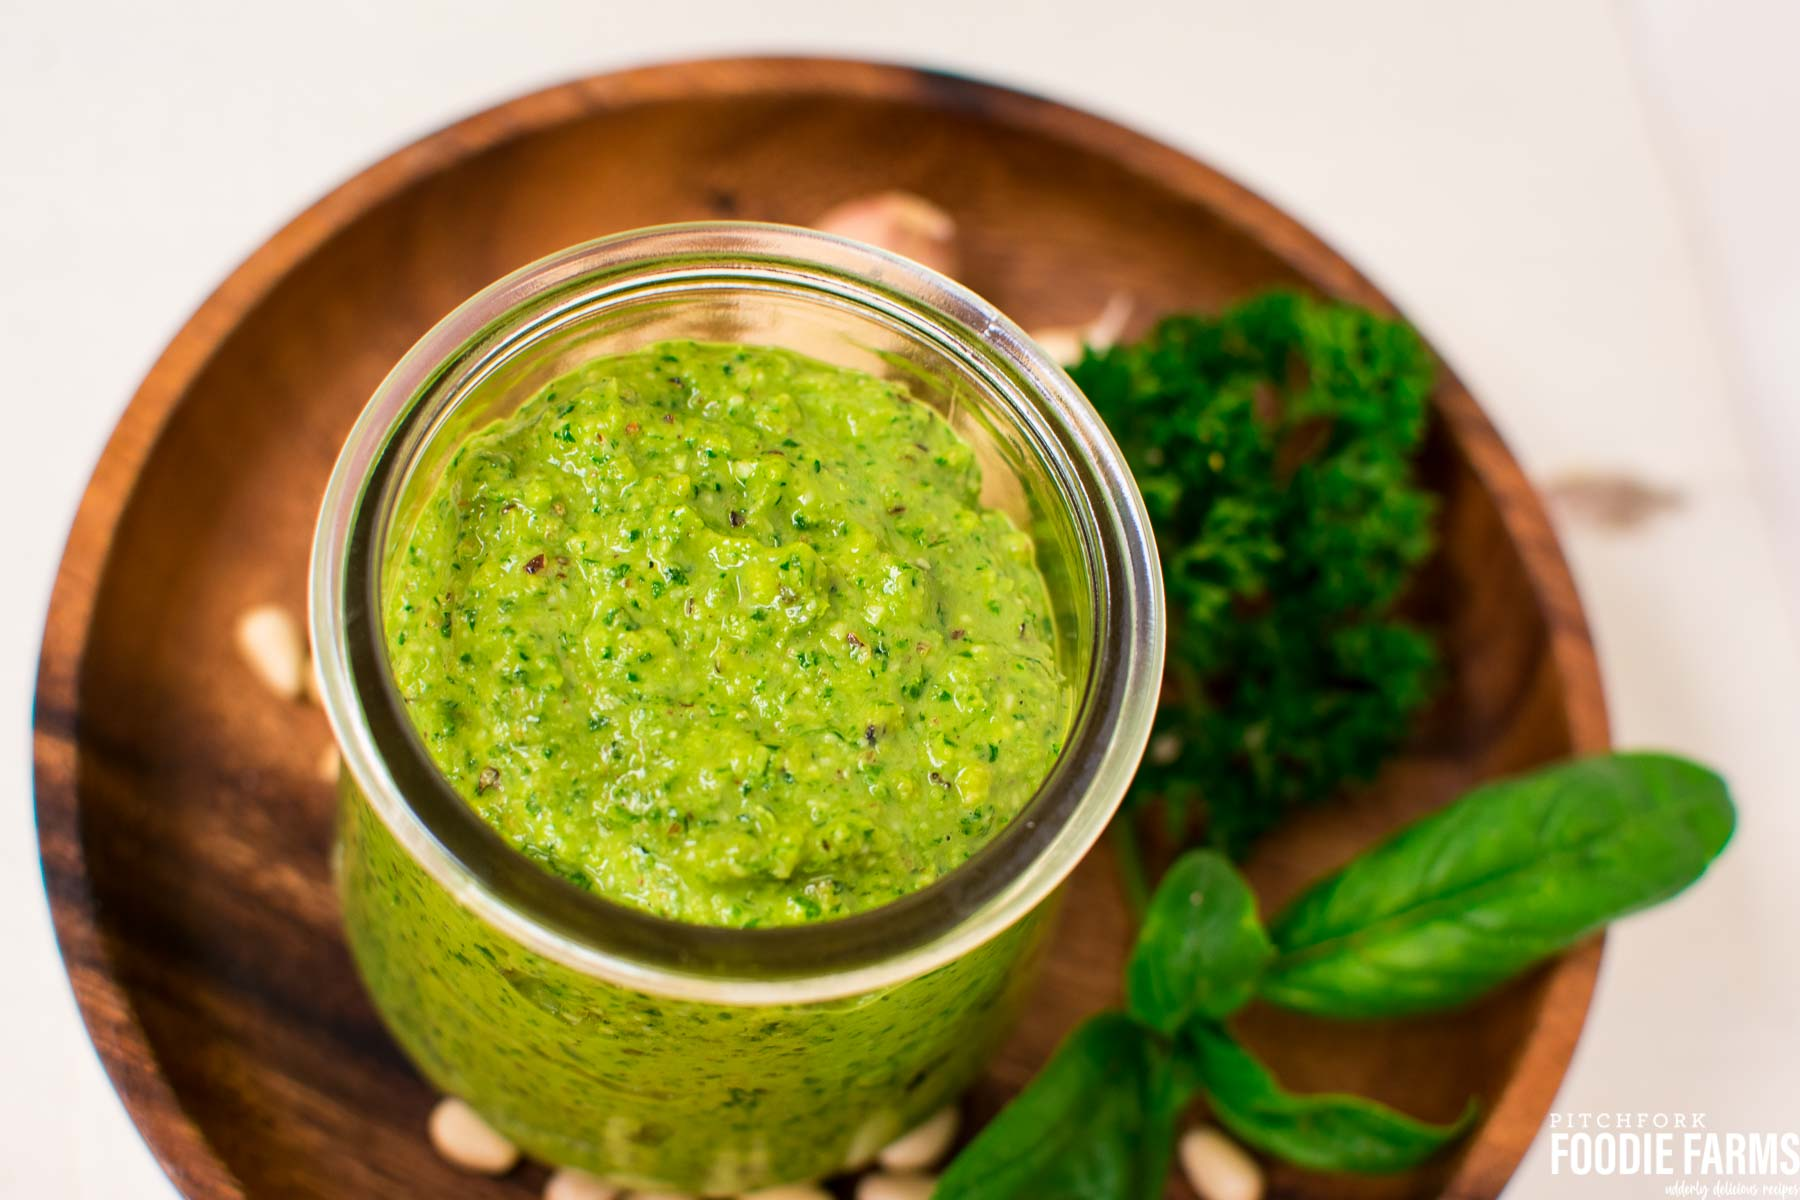 A jar of green pesto with fresh basil leaves, pine nuts and parsley sprinkled around it on a wooden plate.